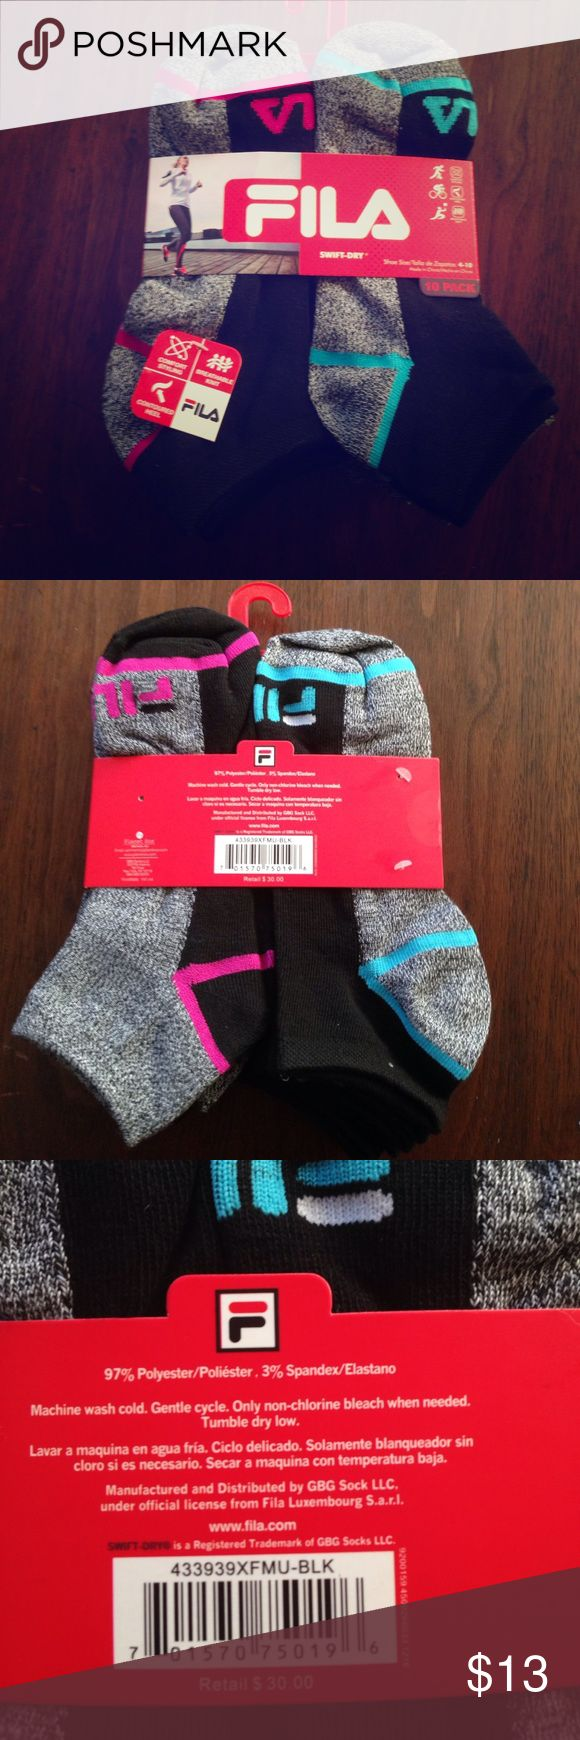 Fila swift dry women's socks 10 pack! Fila swift dry women's socks. Shoe size 4-10. Comfort styling, breathable knit, contoured heel. Fila Accessories Hosiery & Socks